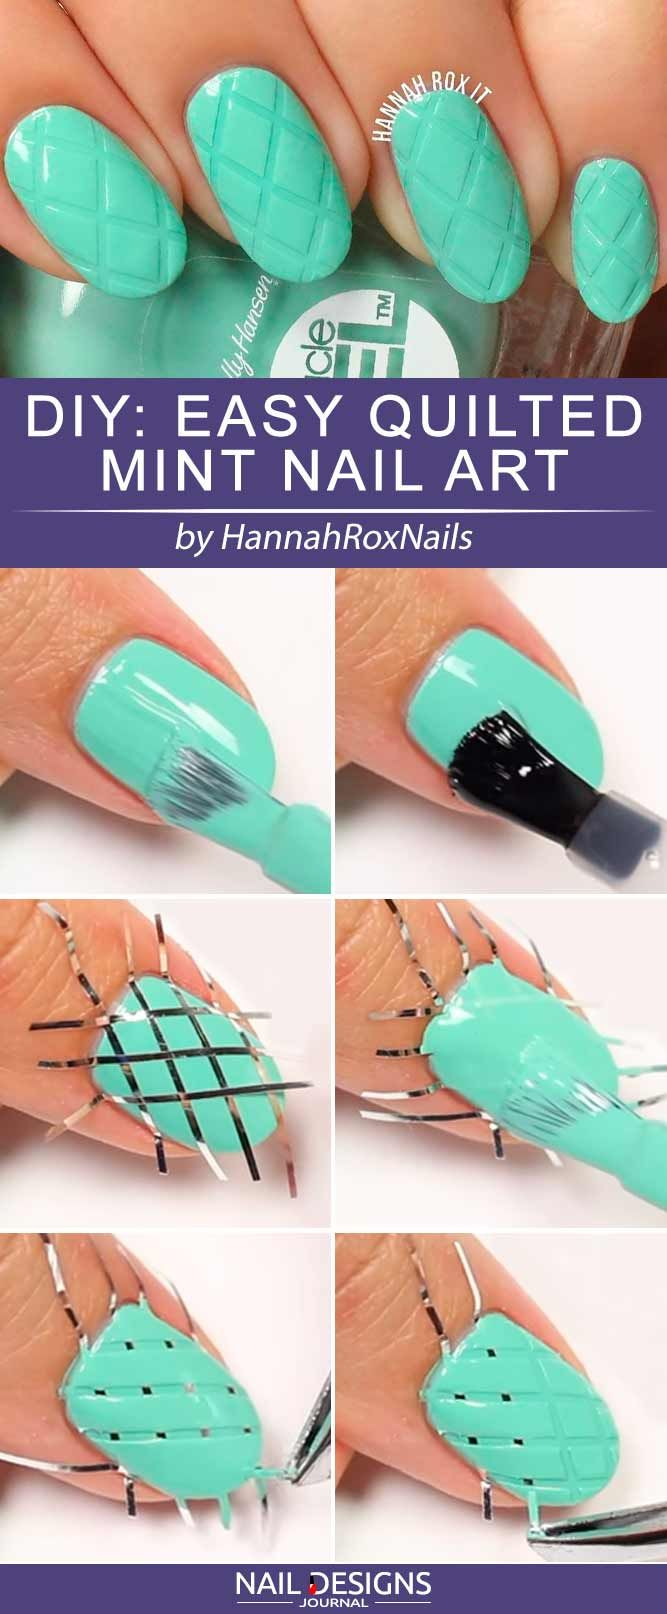 15 Step By Step Tutorials How To Do Nail Designs At Home Basic